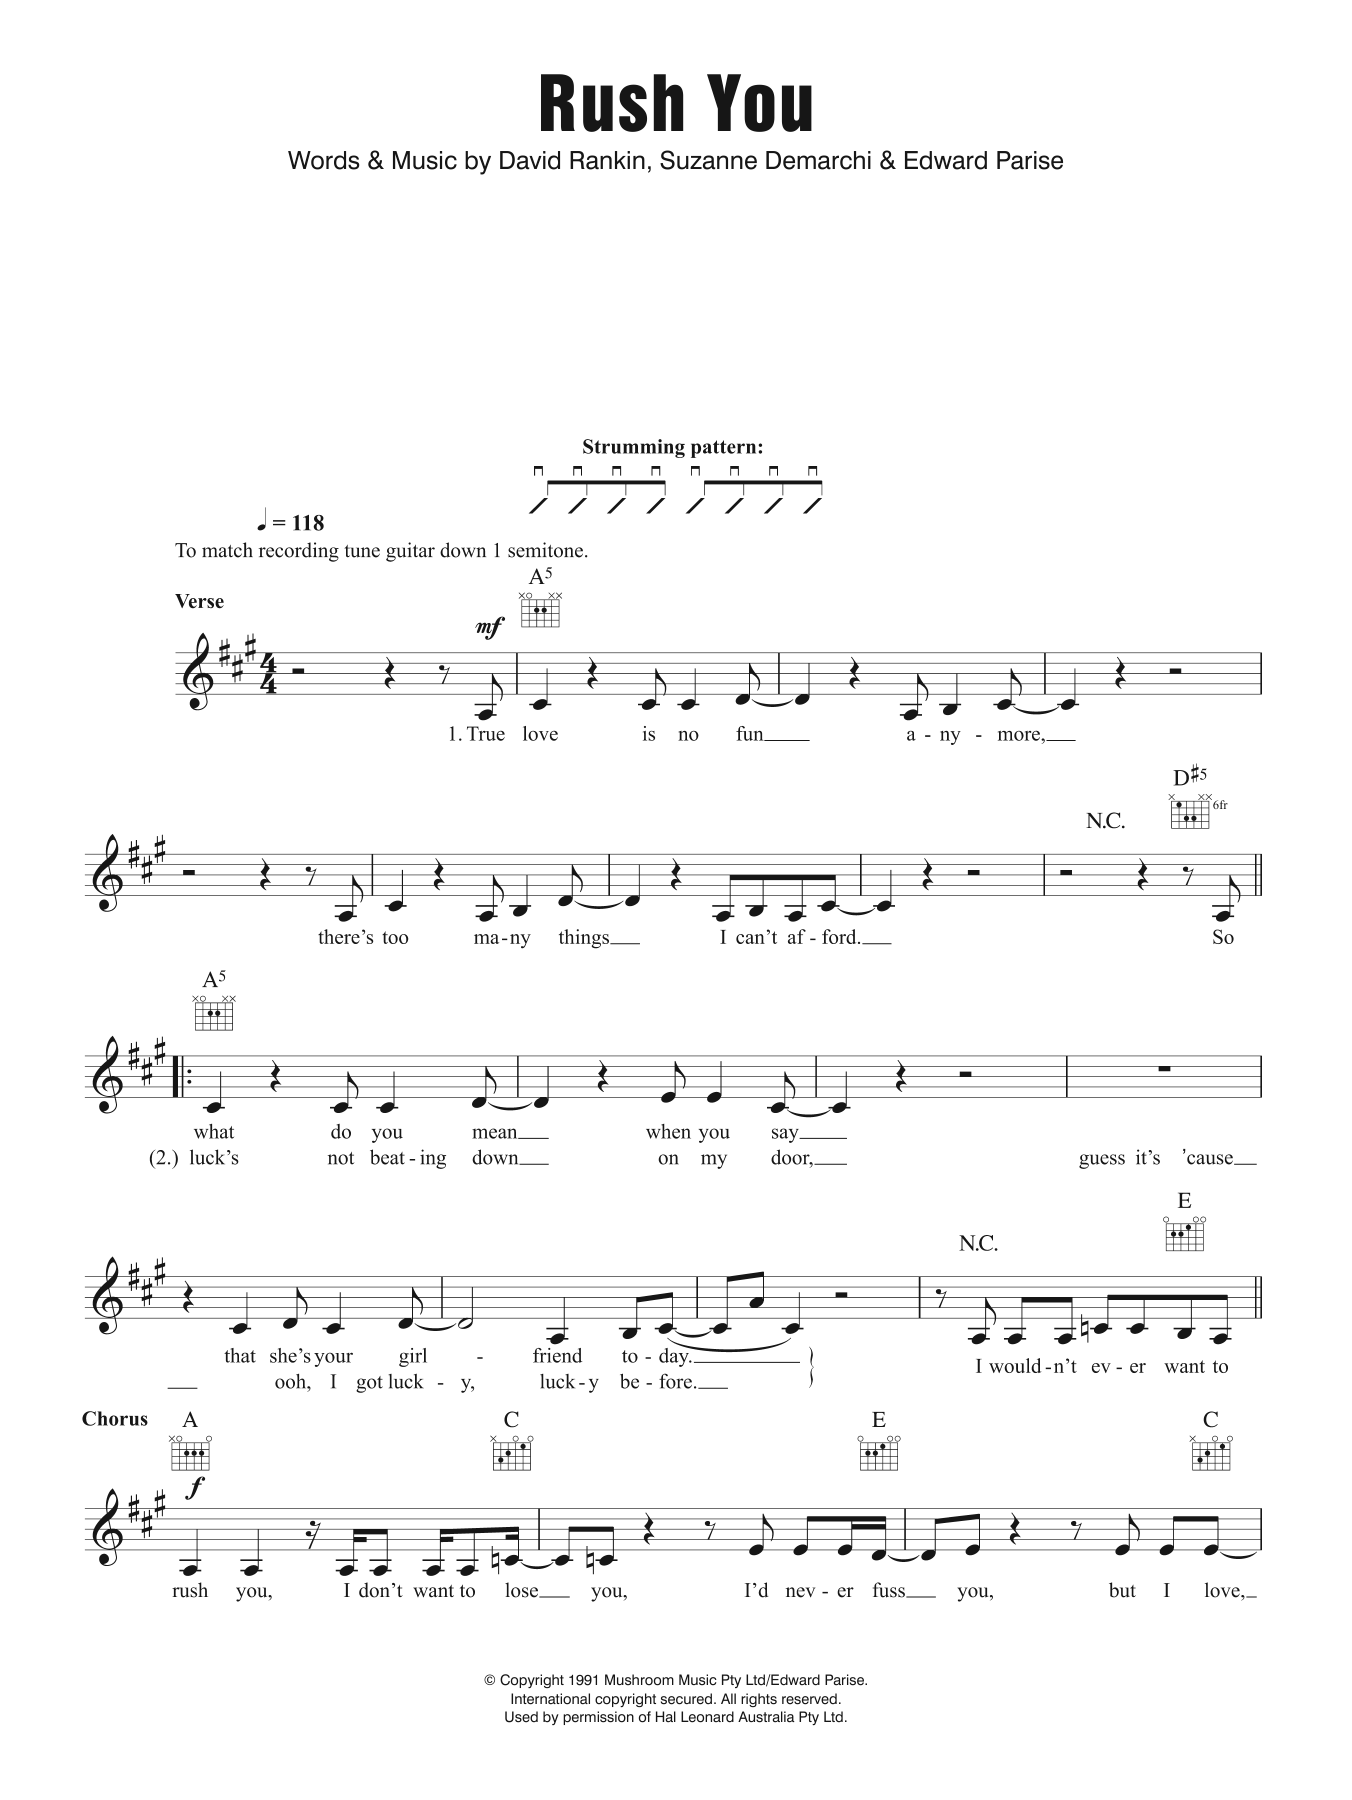 Rush You Sheet Music